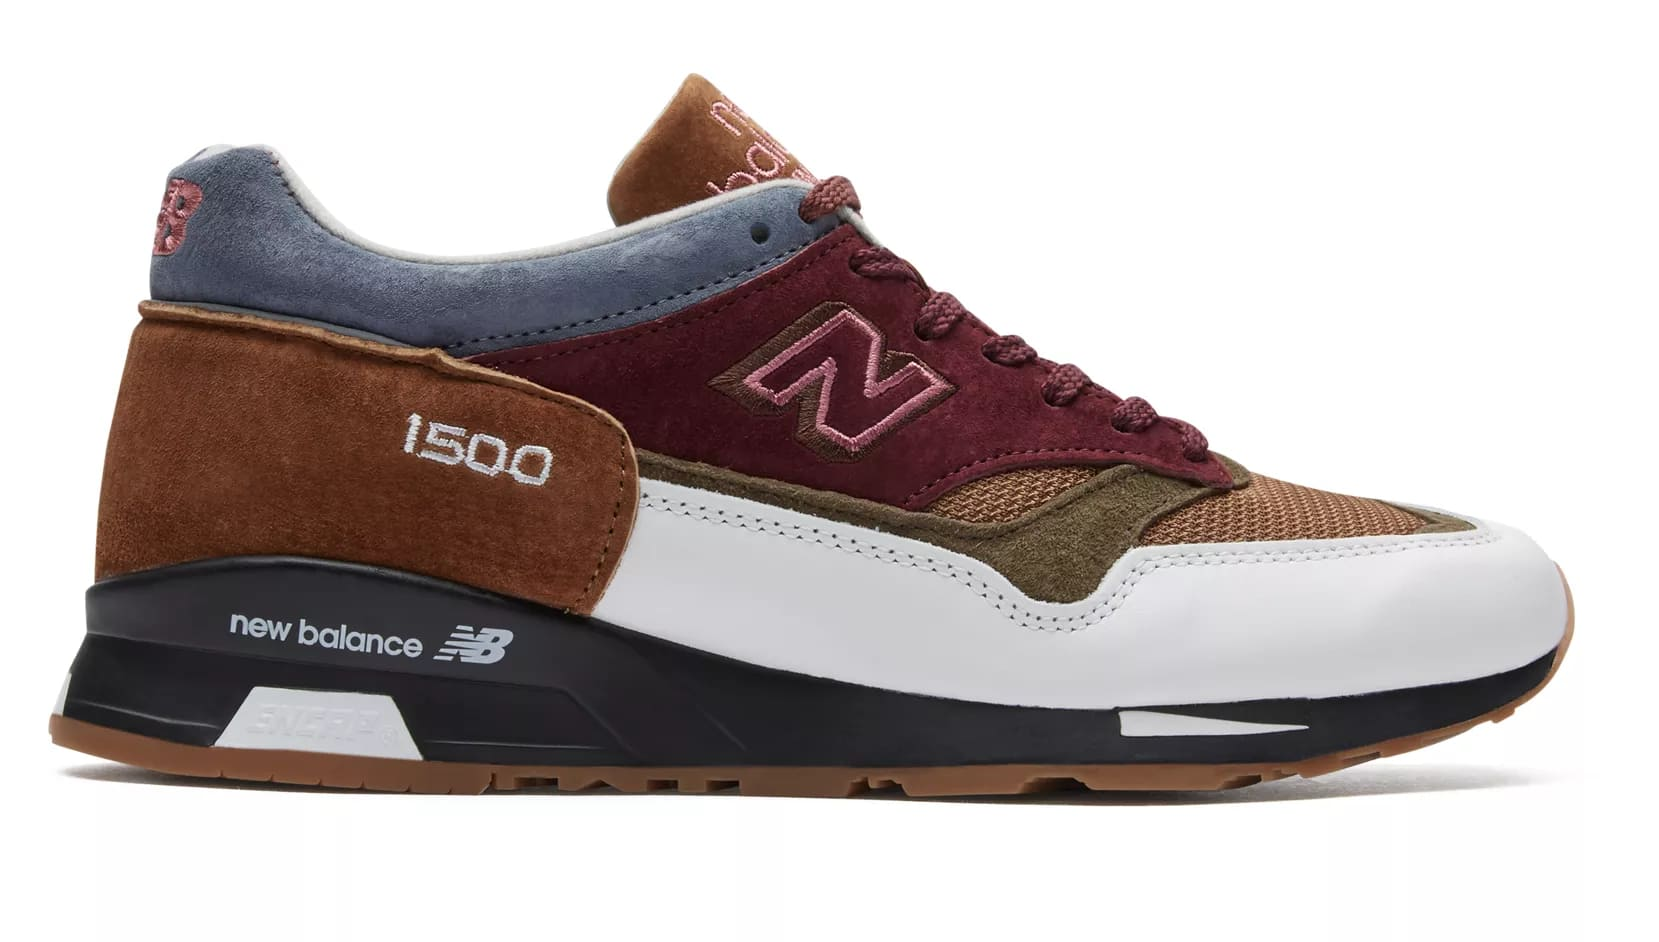 New Balance 1500 Made in UK Scarlet Stone